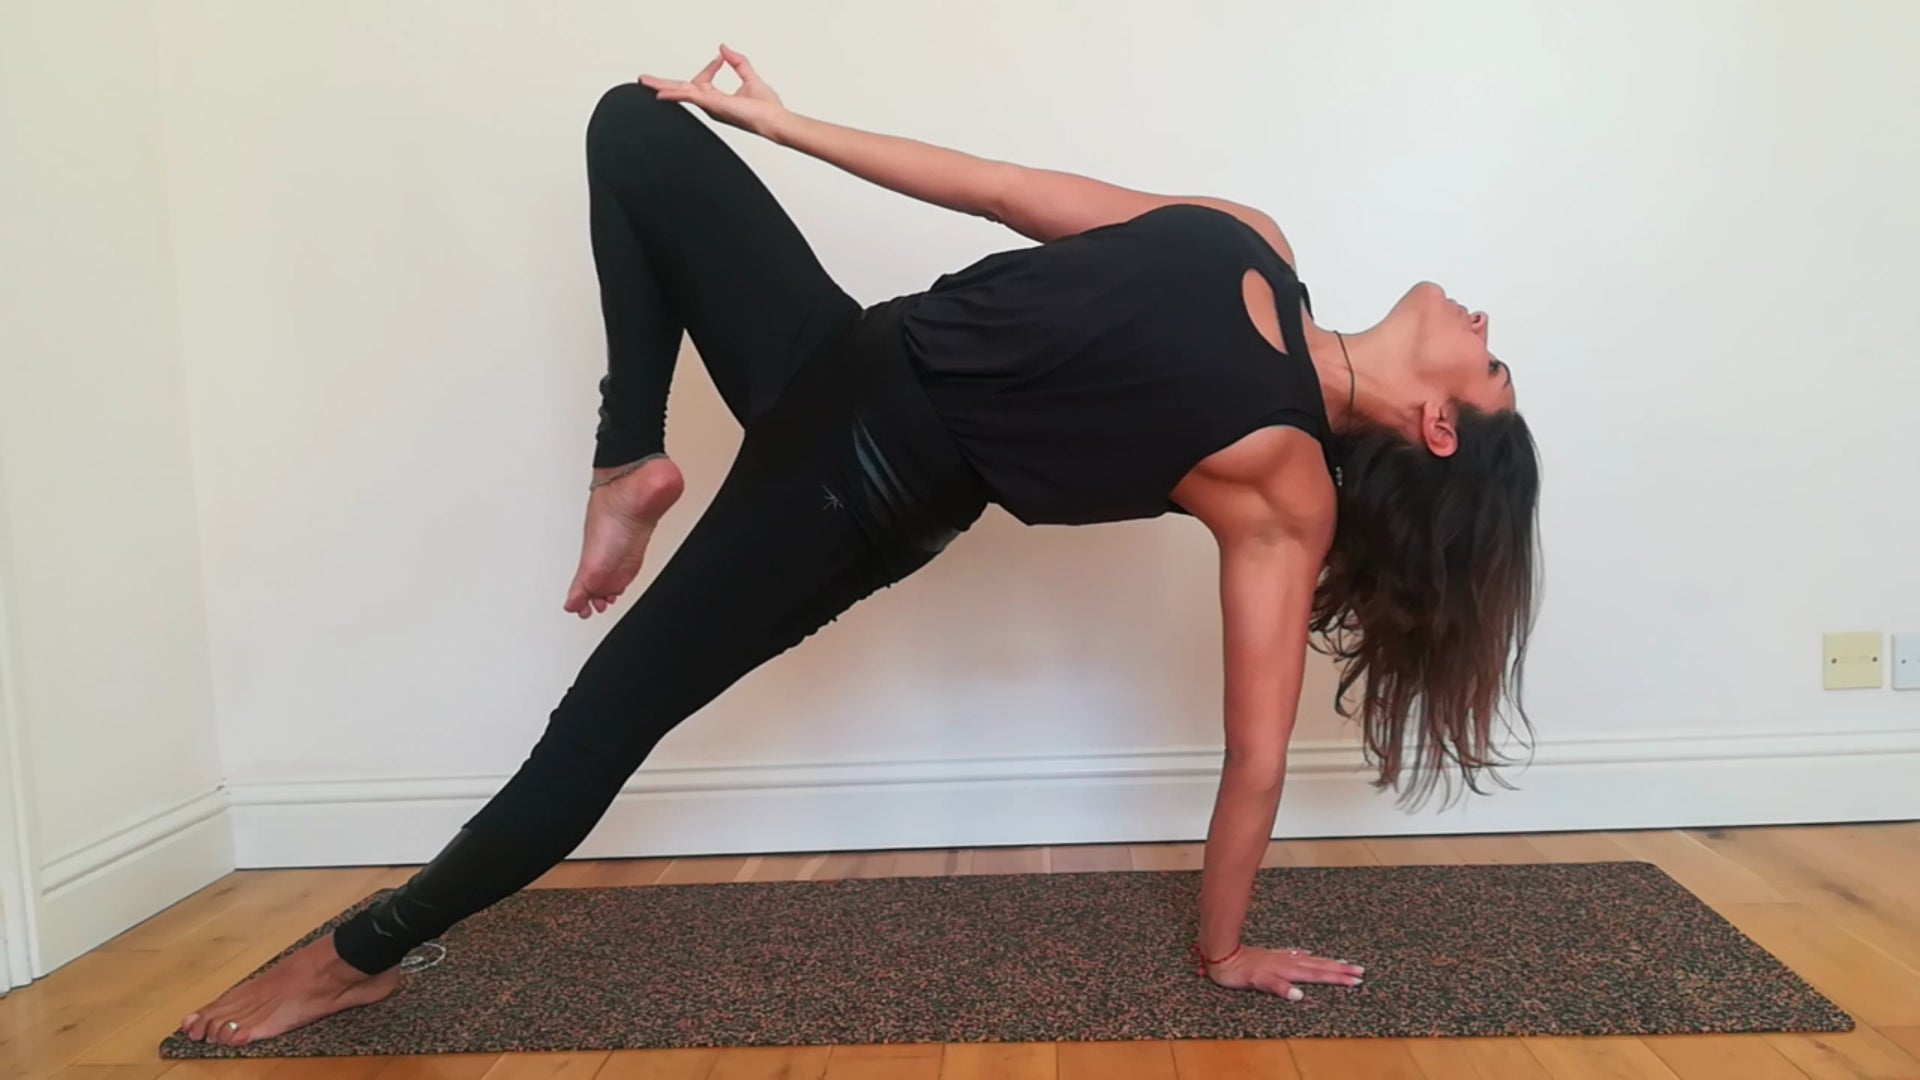 Meet our Yoga Brand Ambassador Lorina!